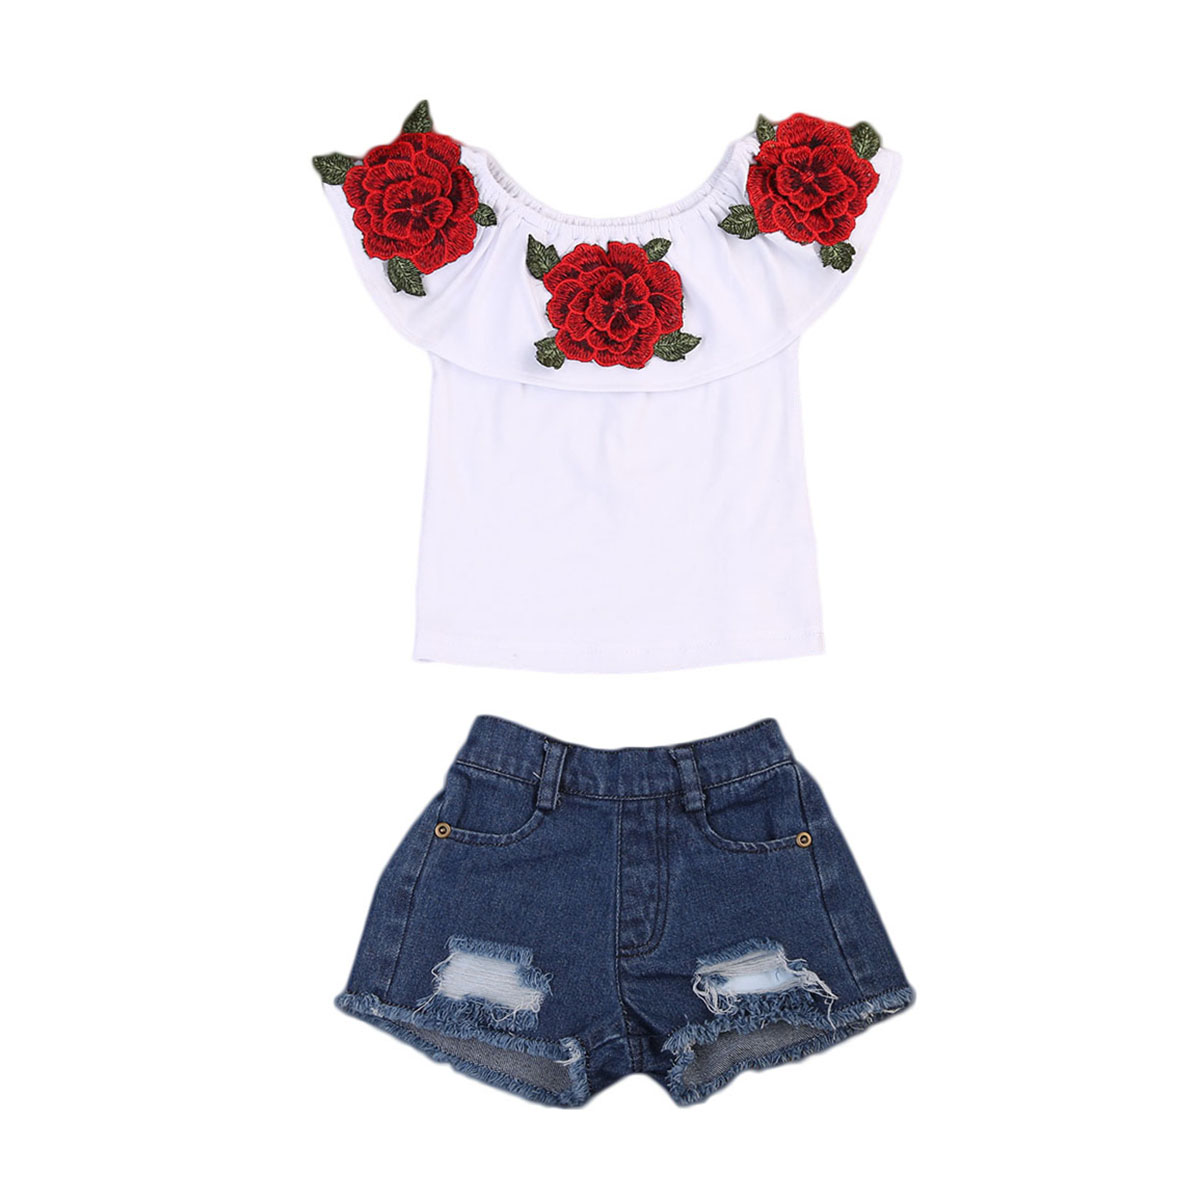 2pcs Little Girls 3D Flower Summer Clothing Set Pretty Toddler Kids Baby Girl Floral Tops Denim Hot Shorts Outfits Clothes 2017 summer toddler kids clothing set princess girls lace t shirt tops floral shorts overall jumpsuit 2pcs children clothes 1 6y